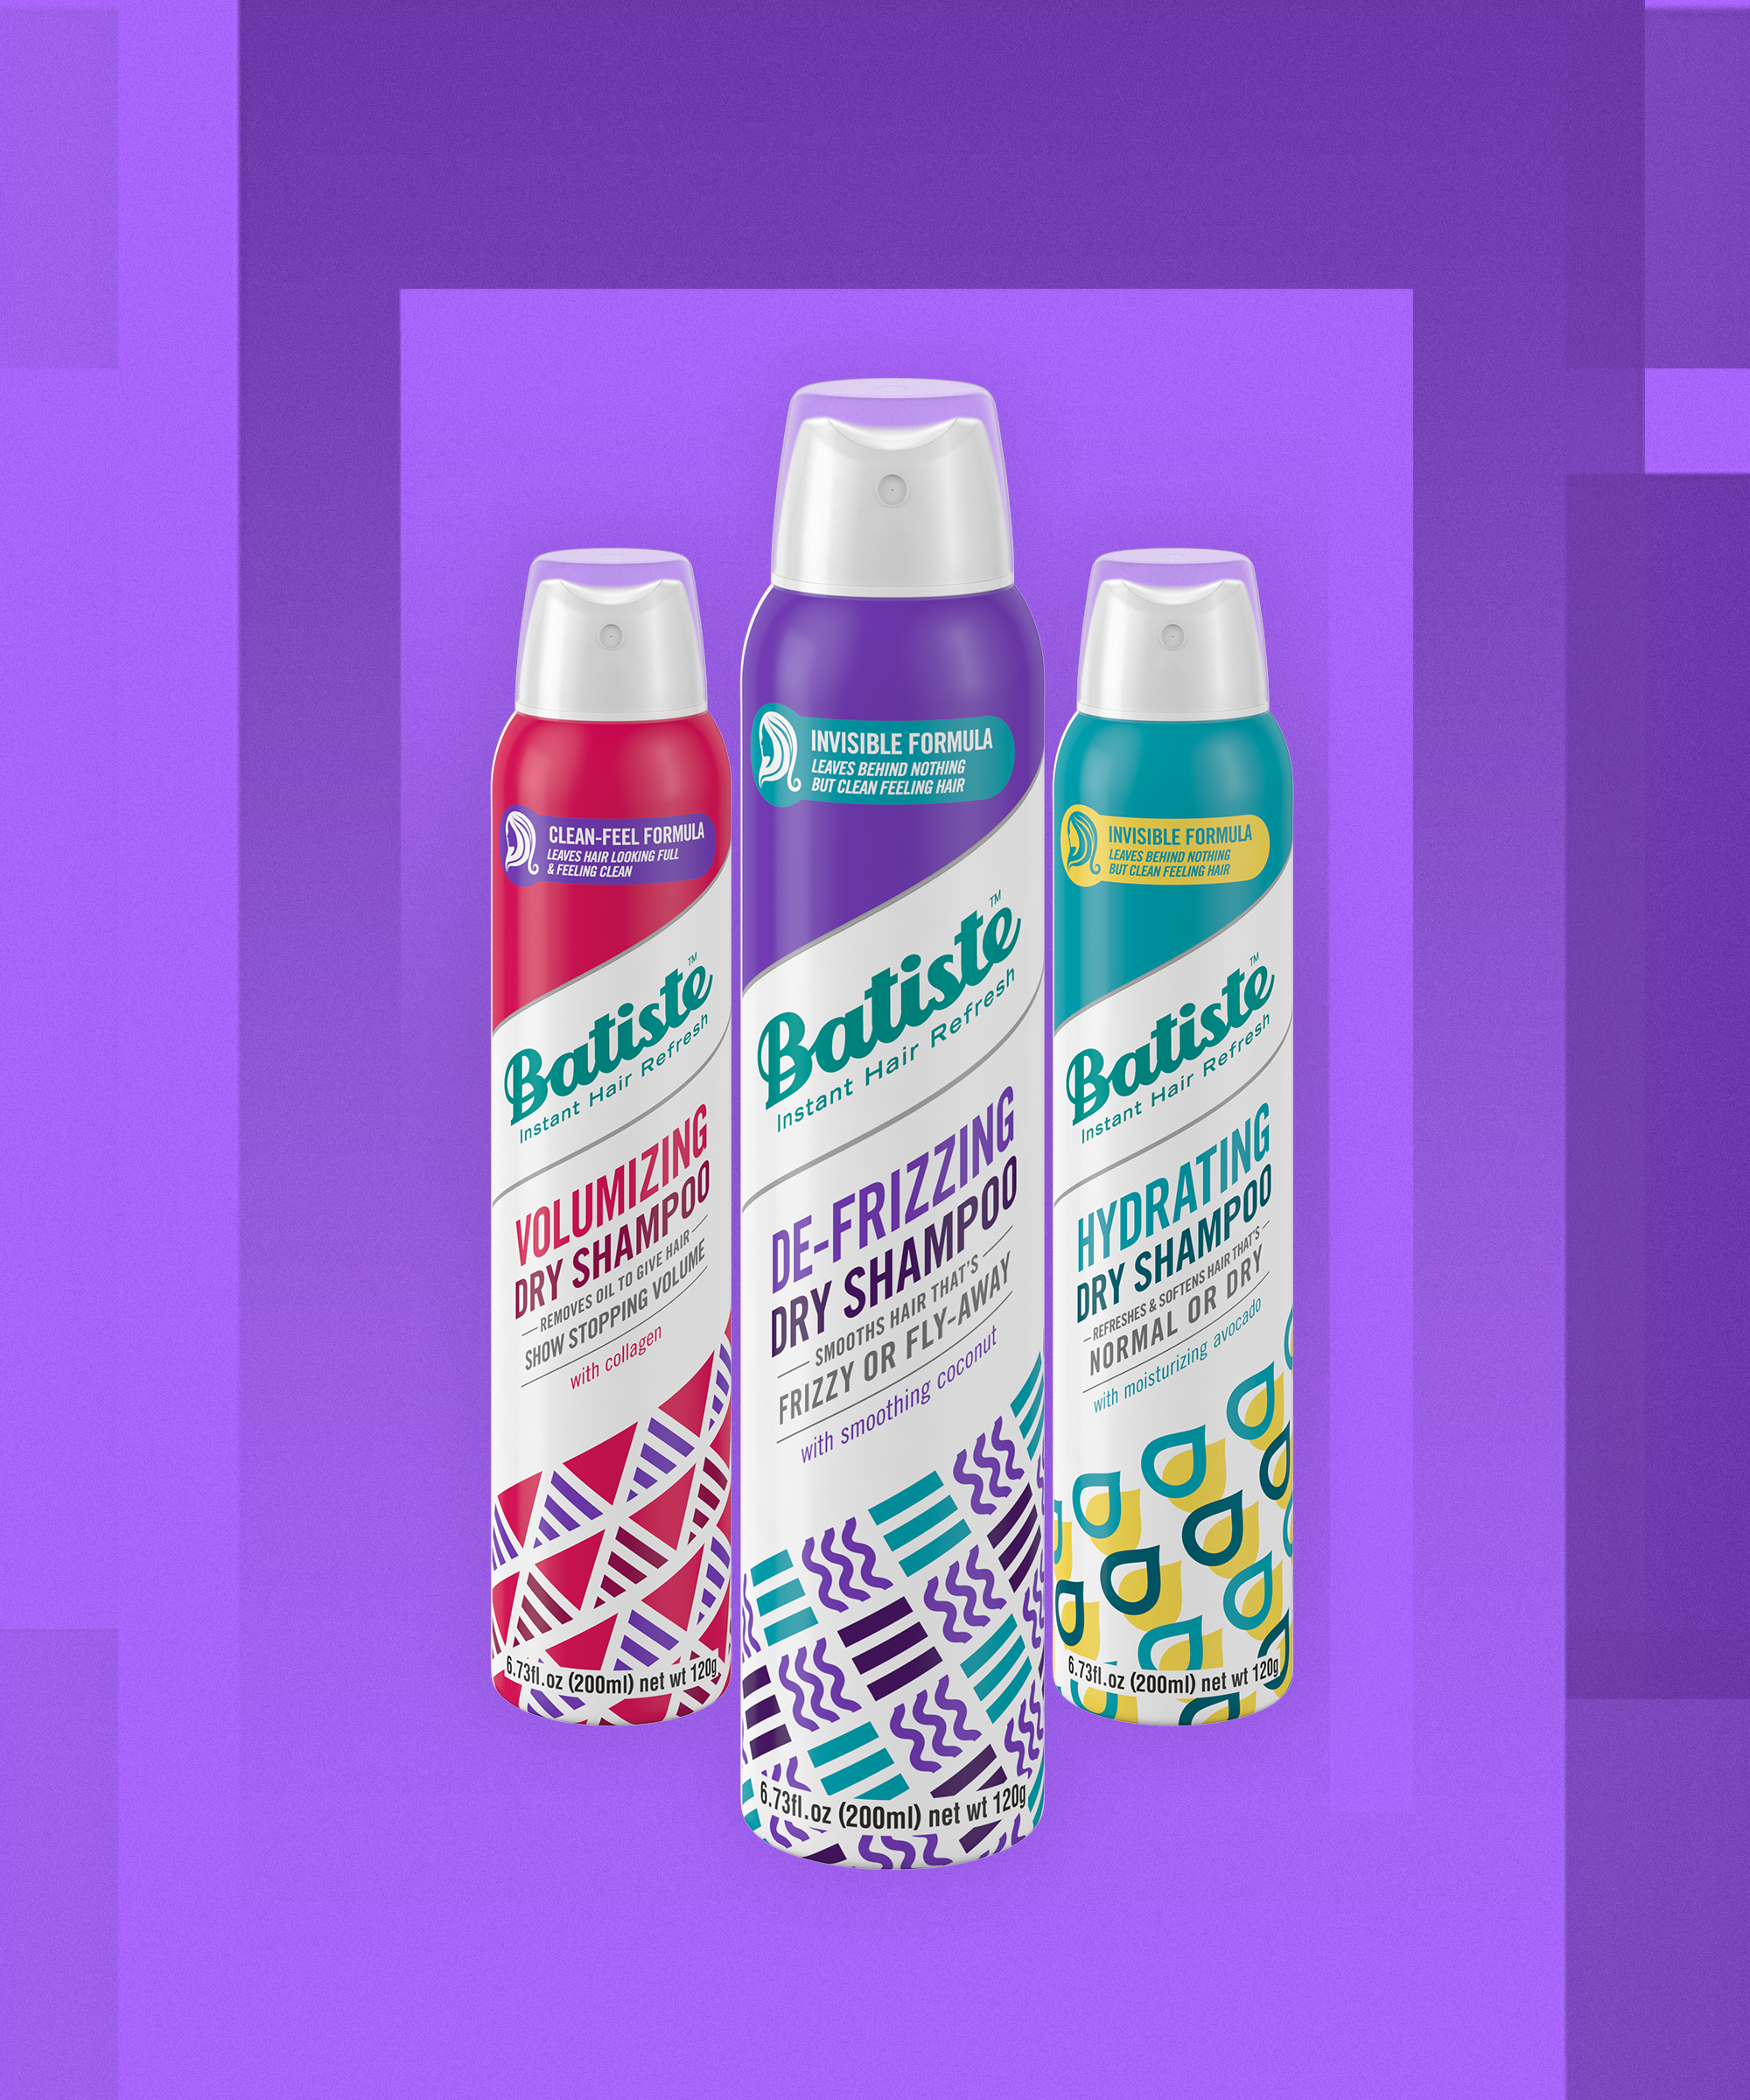 Let Us Refresh Your Dry Shampoo Stash This Summer, For Free